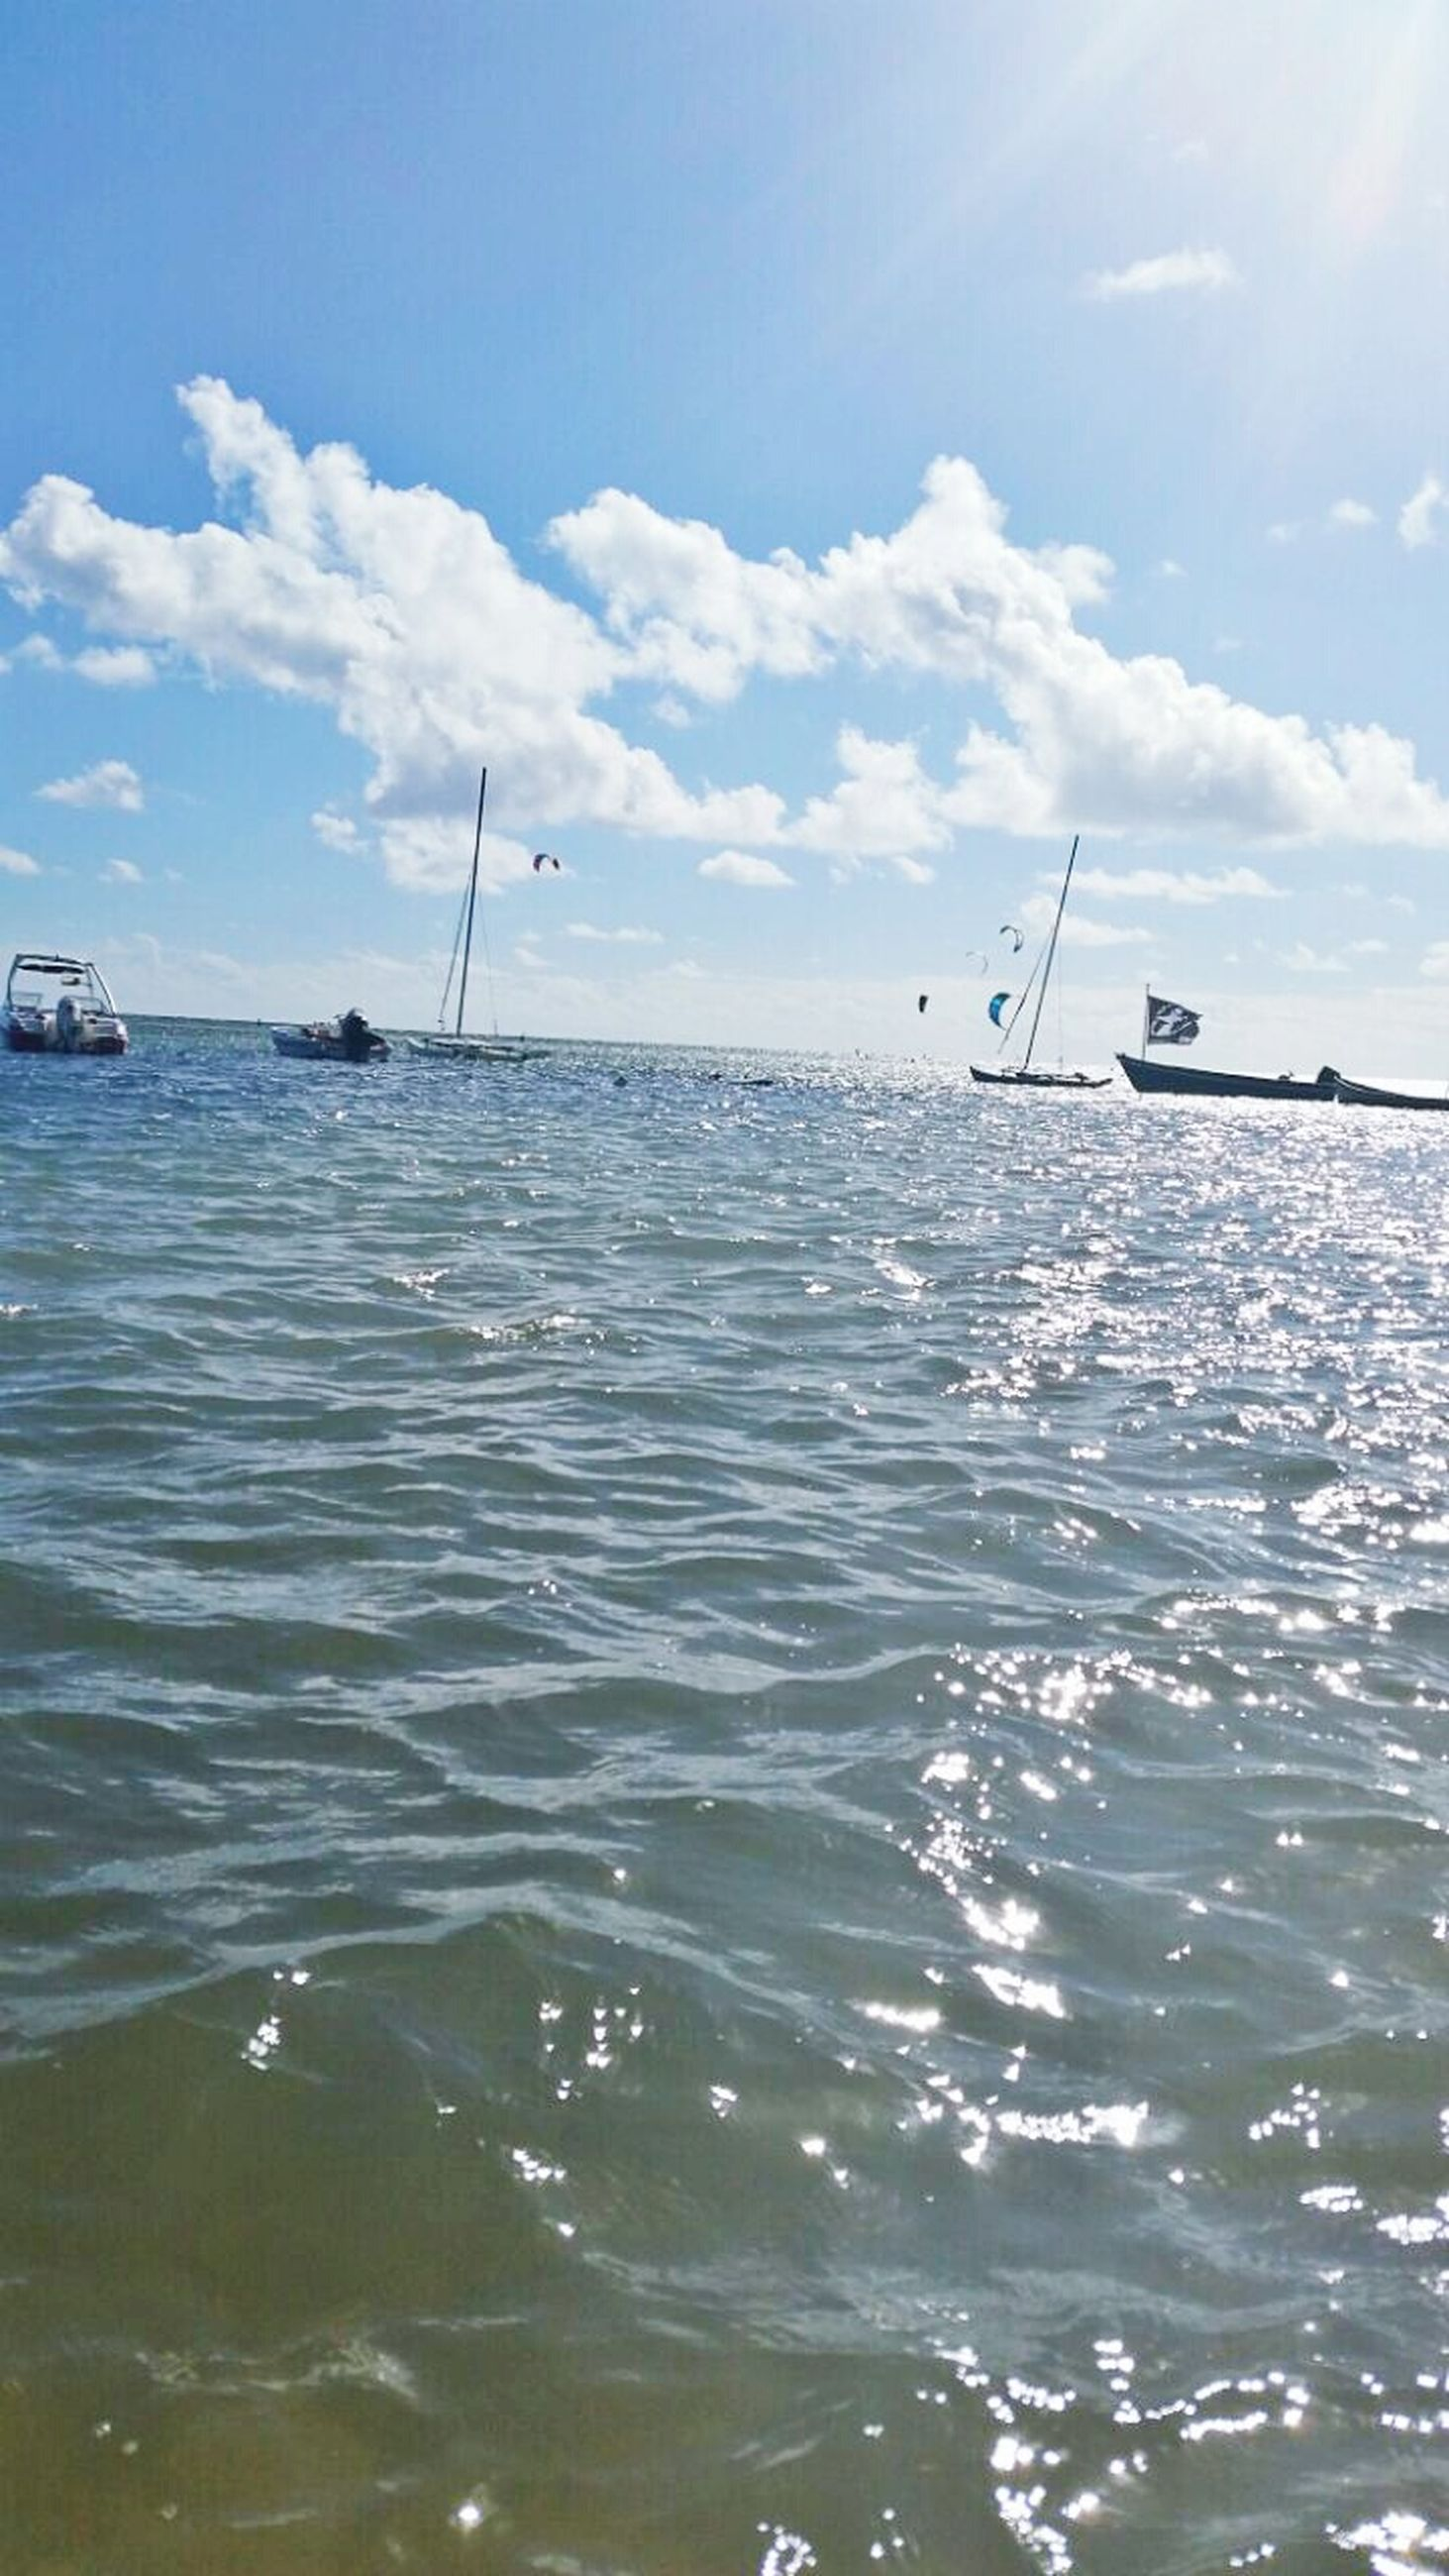 water, sky, sea, waterfront, rippled, tranquility, tranquil scene, scenics, beauty in nature, nature, cloud - sky, nautical vessel, blue, reflection, sunlight, cloud, horizon over water, day, transportation, outdoors